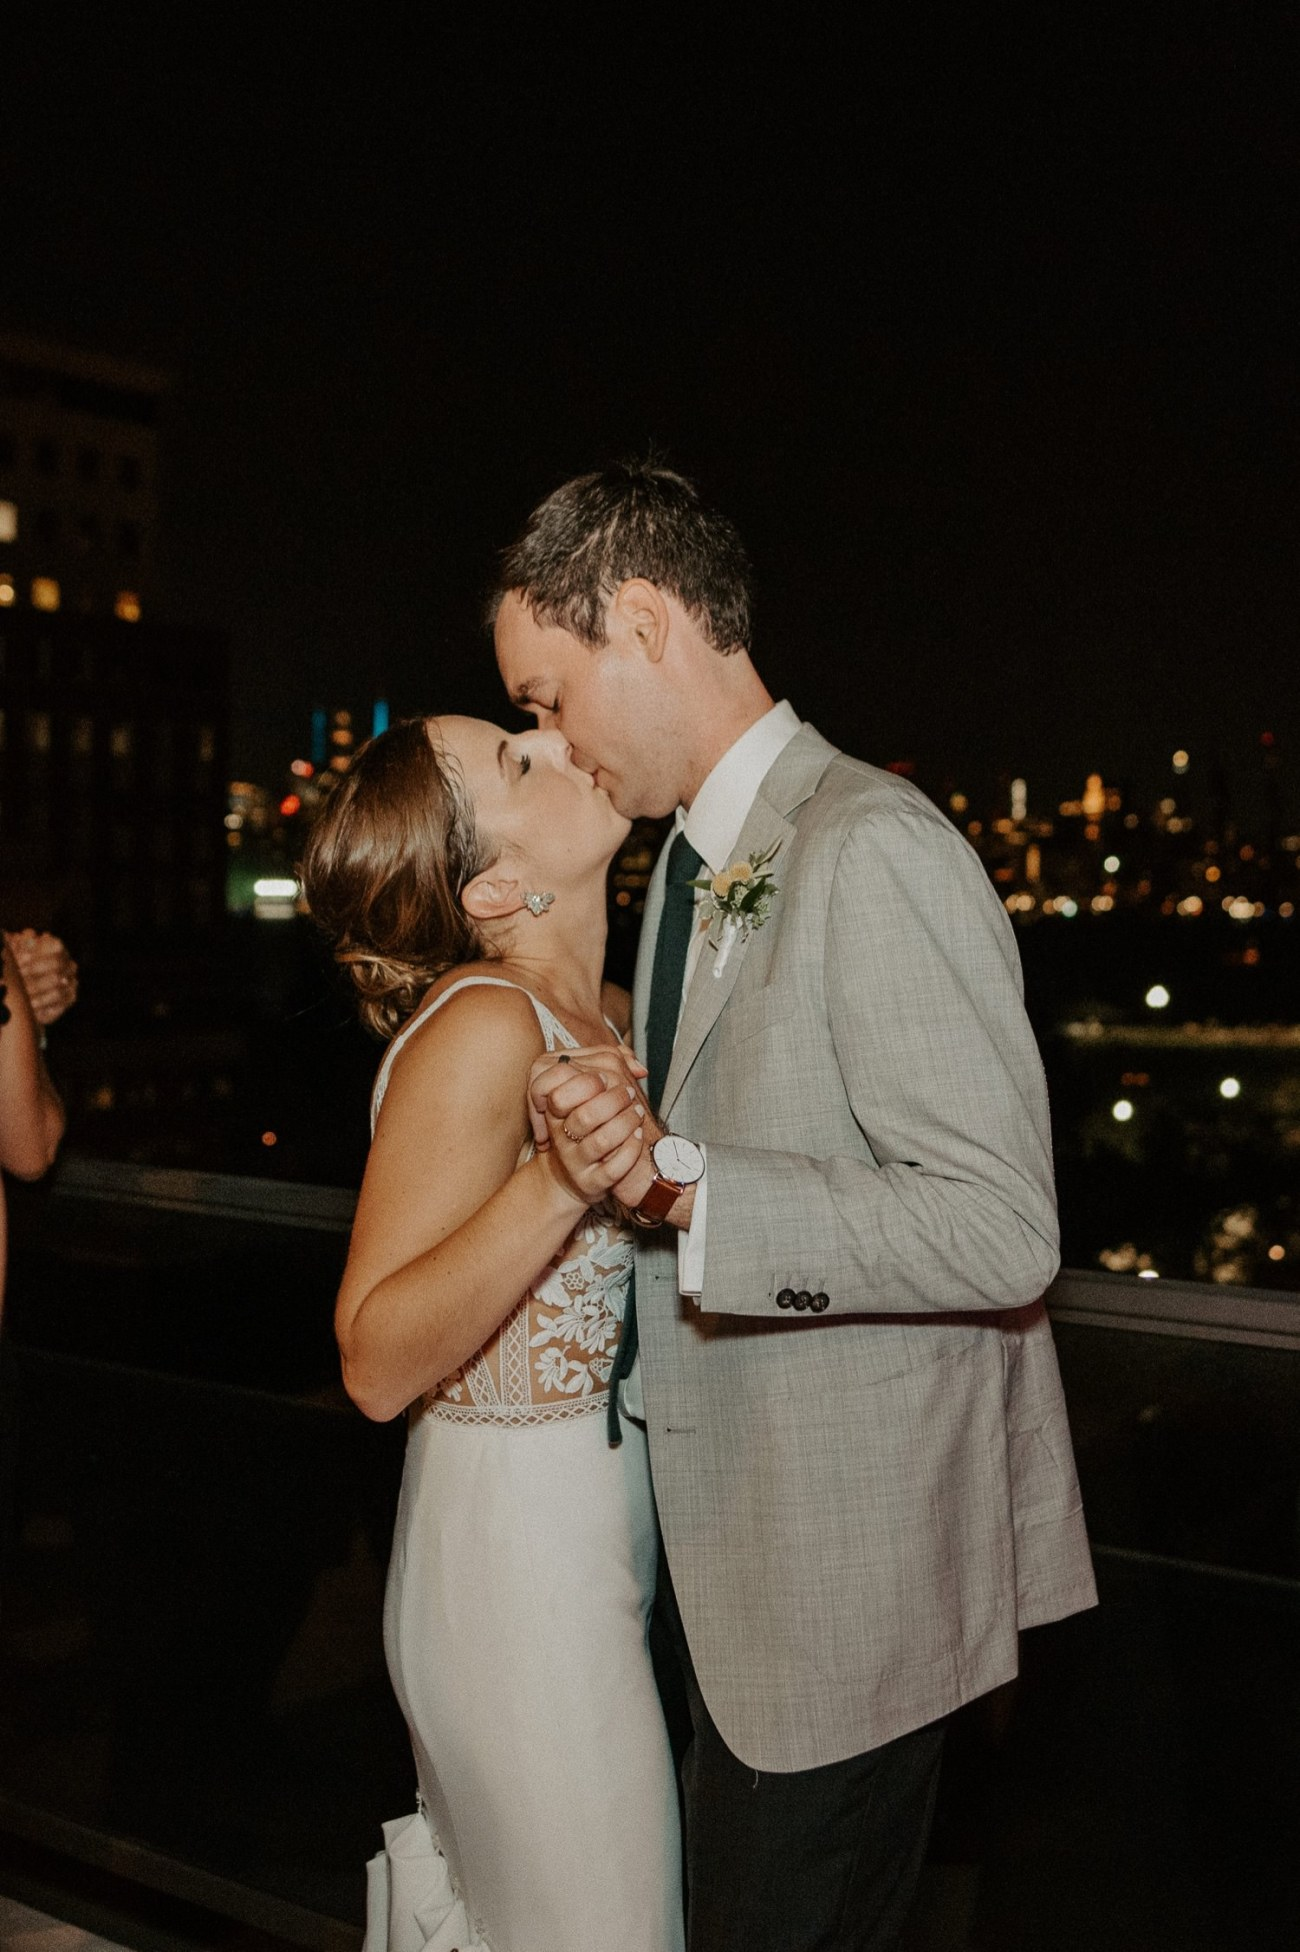 Antique Loft Hoboken Wedding New Jersey Wedding Photographer Anais Possamai Photography 101